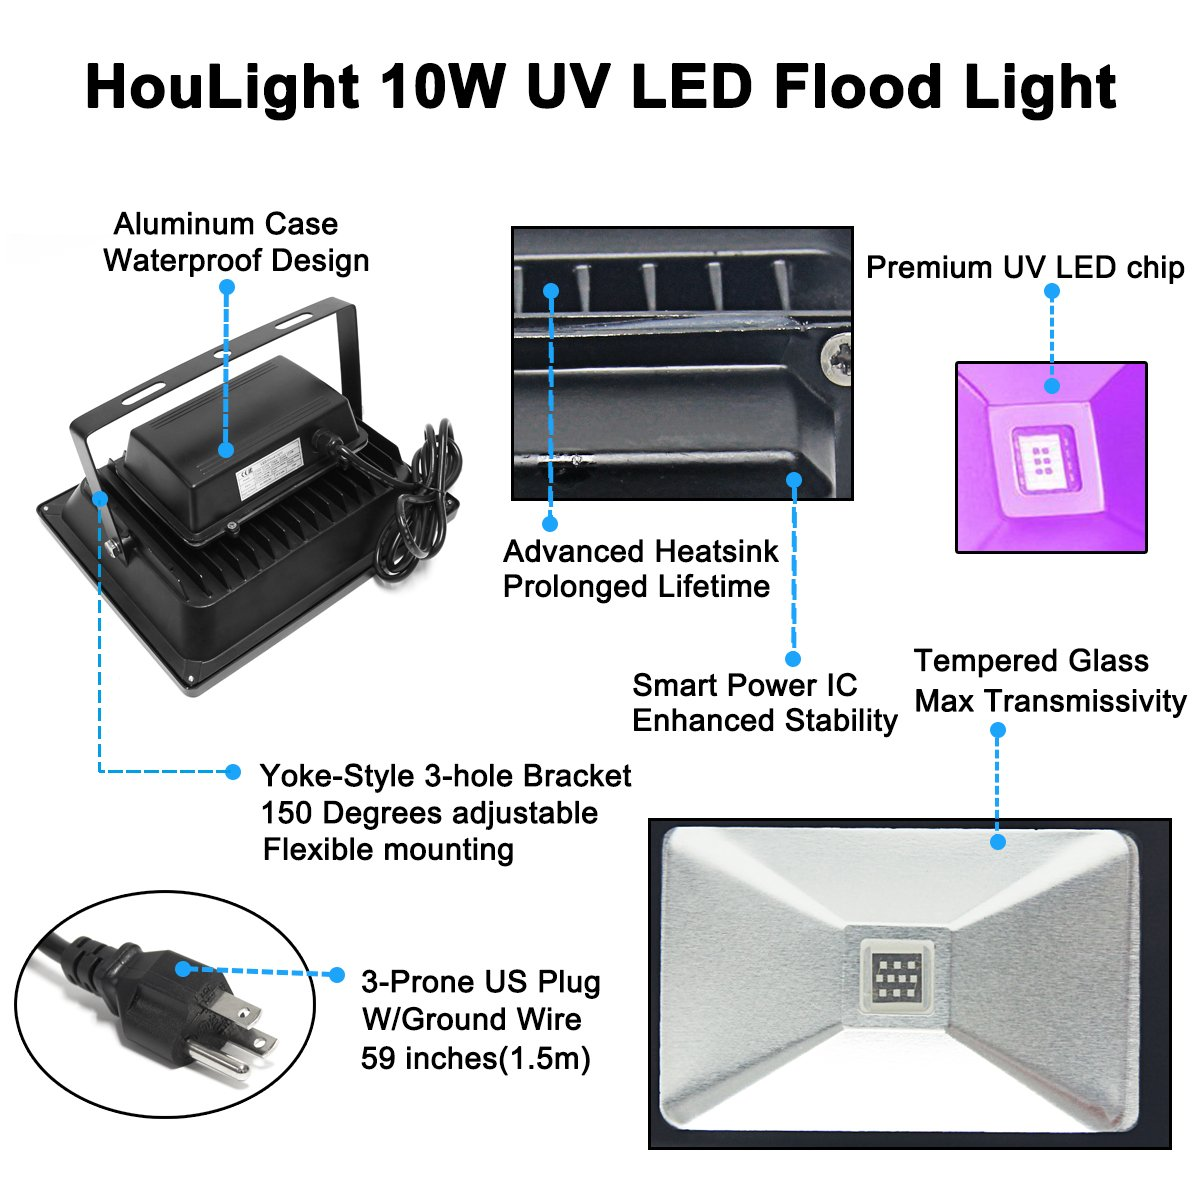 Wiring Lampu Tl Led Signstek 50w Uv Black Light Ultraviolet Flood Ip65 Waterproof For Party Supplies Neon Glow In The Dark Fishing Aquarium